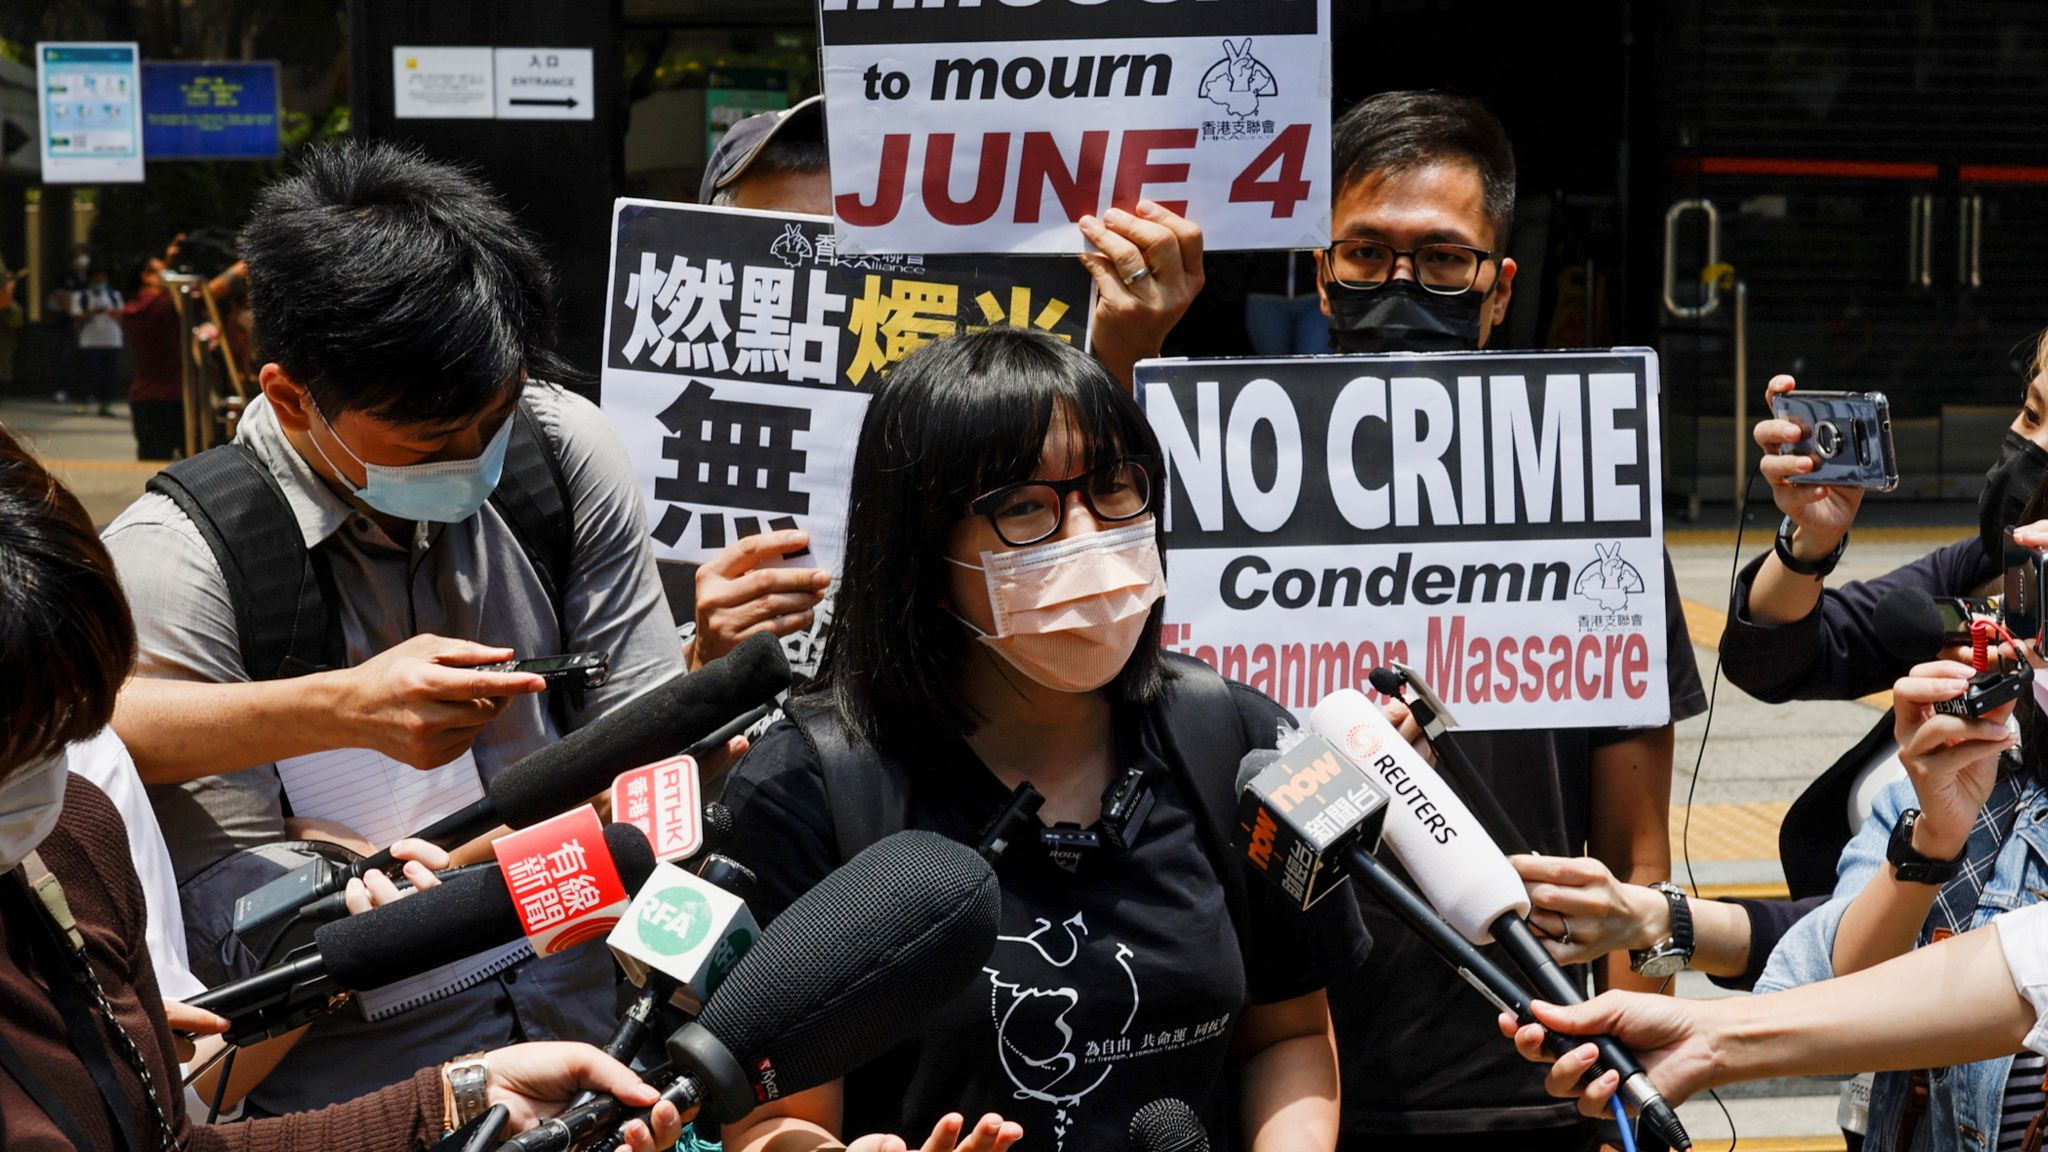 Nothing foreign about Hong Kongs common law or its